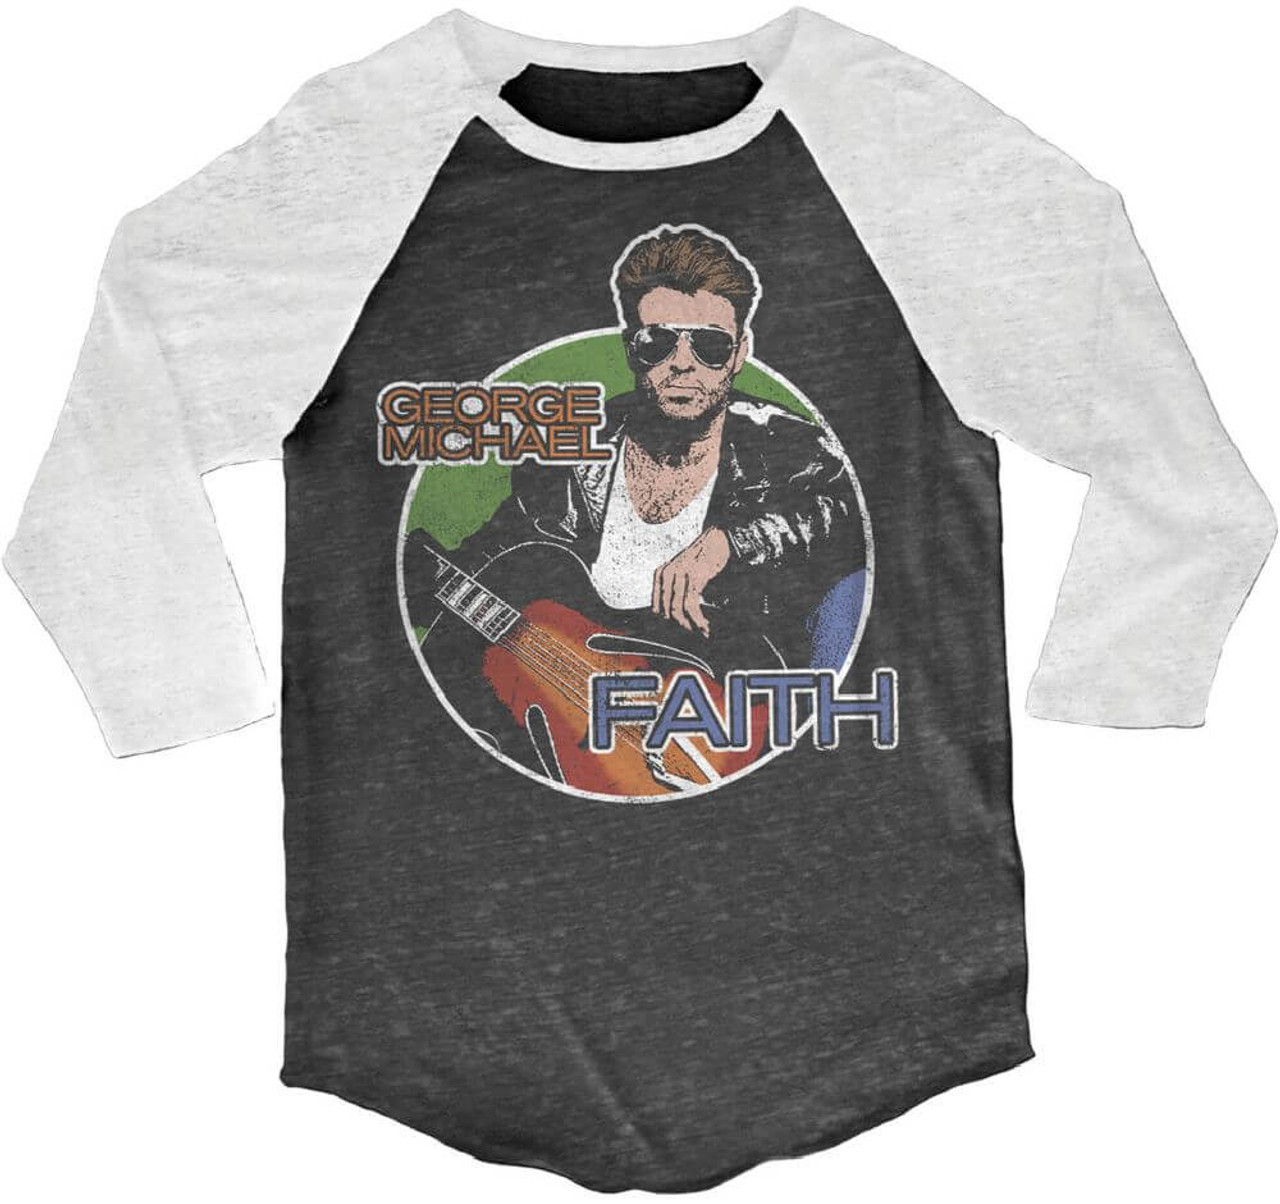 George Michael Vintage Baseball Jersey - Faith Music Video Drawing | Black  & White Raglan